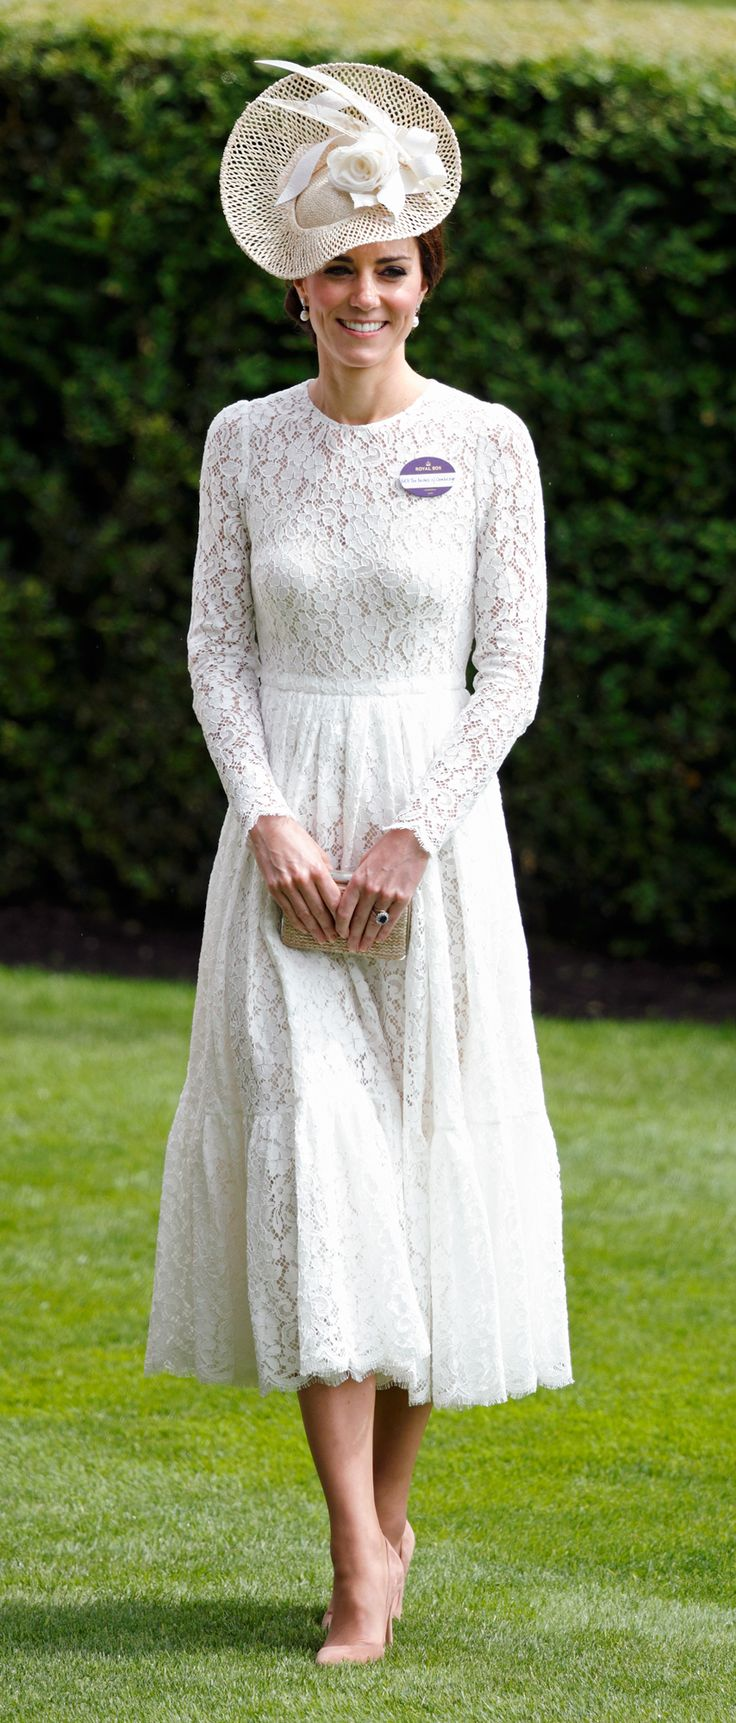 Kate Middleton's Most Memorable Outfits - June 15, 2016 from InStyle.com